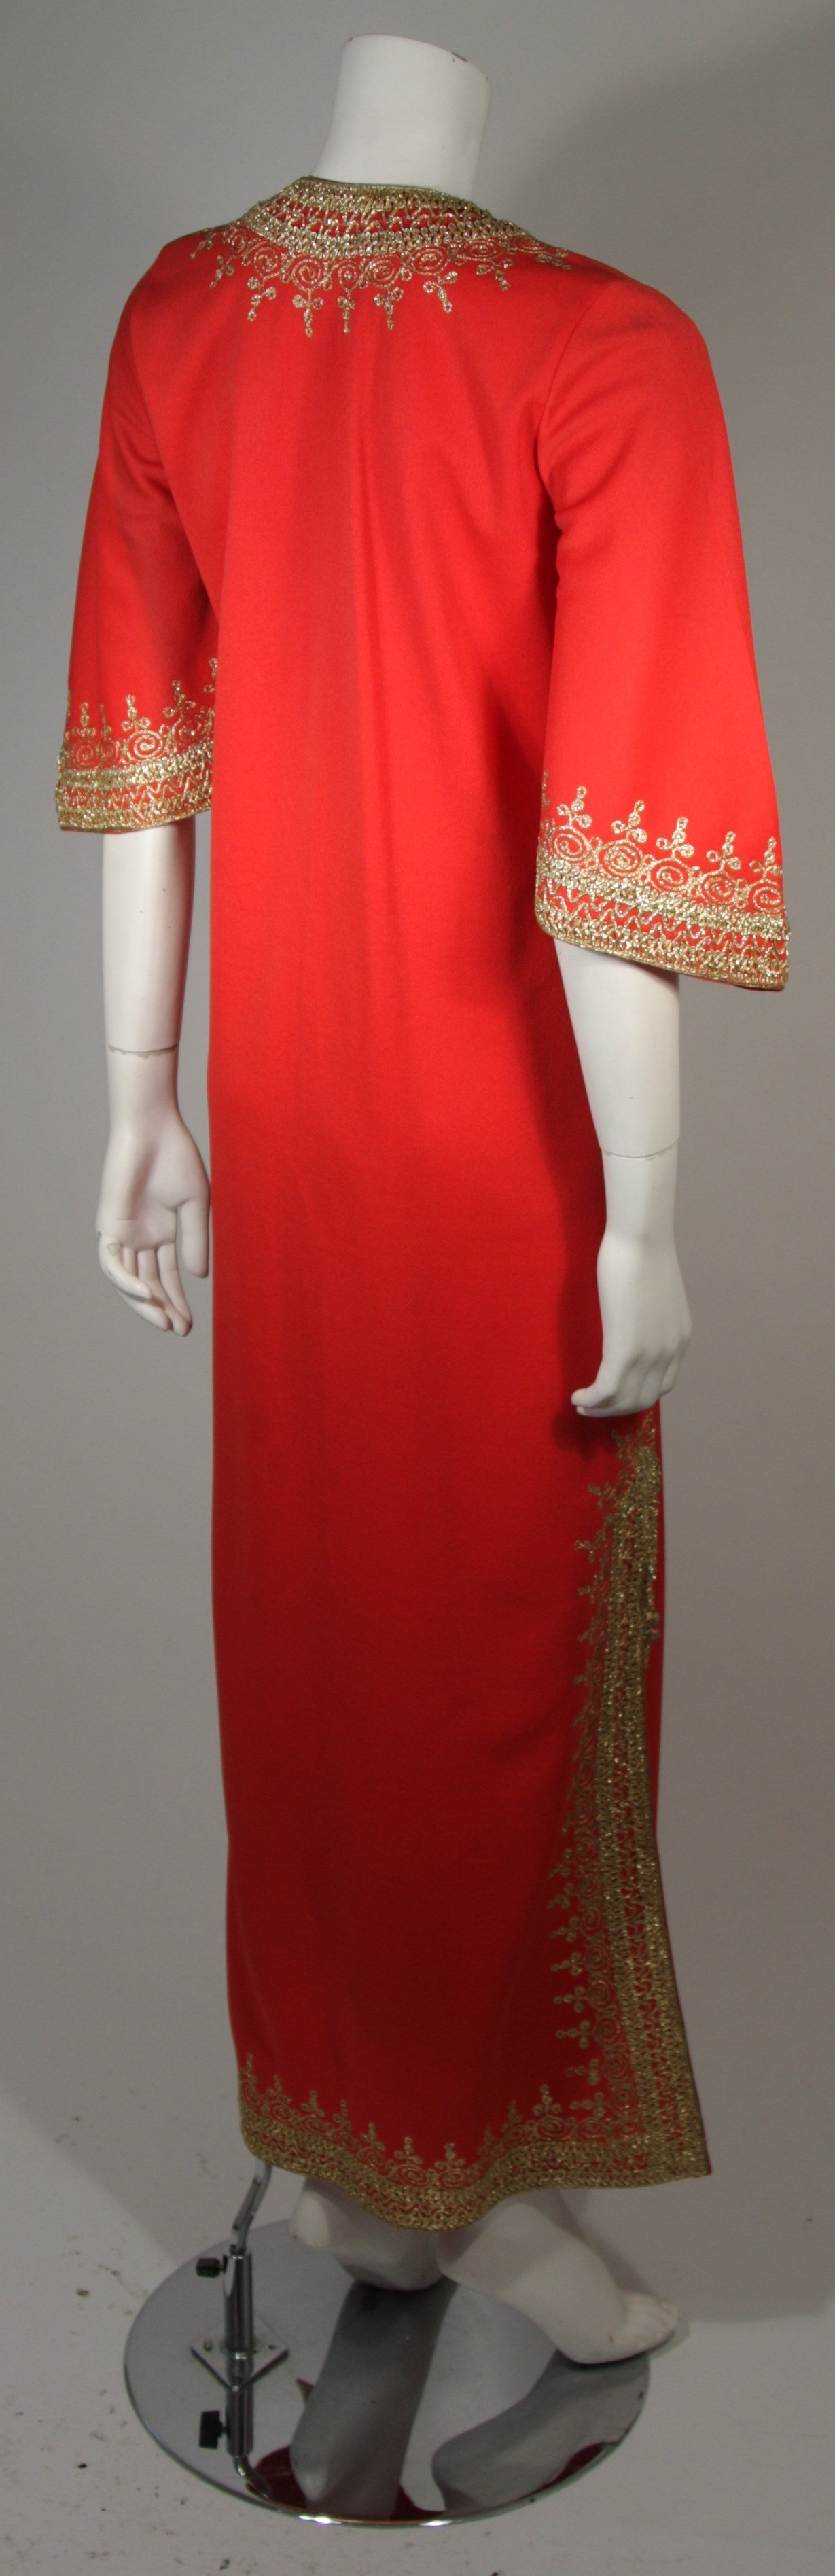 Custom Orange and Gold Indian Kaftan Size Small For Sale 1